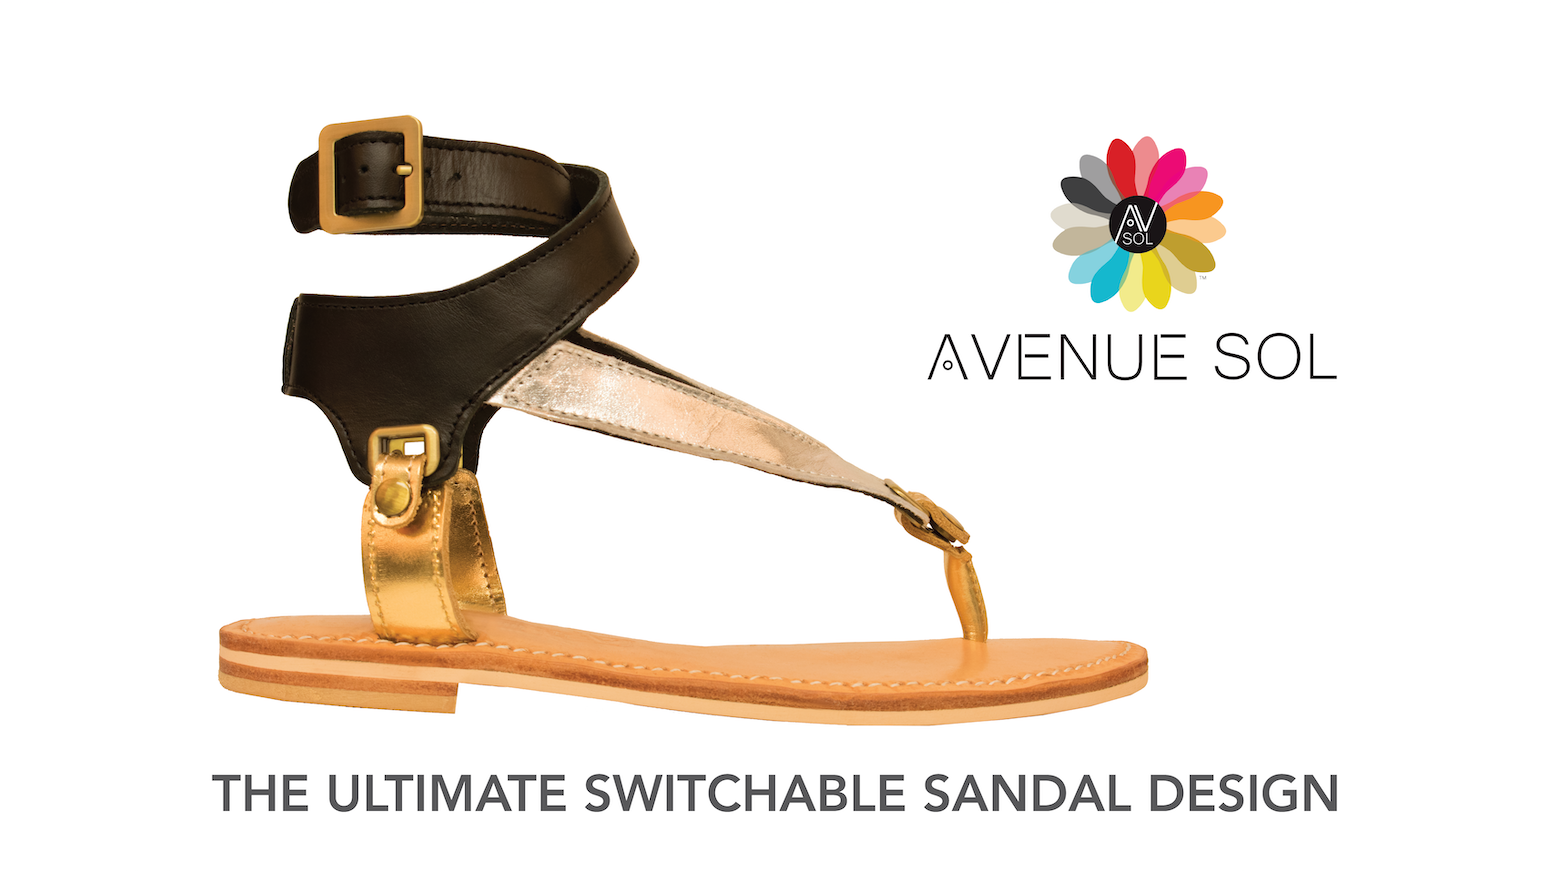 Switchable Top Sandals, With Flexible Style & Color Options.